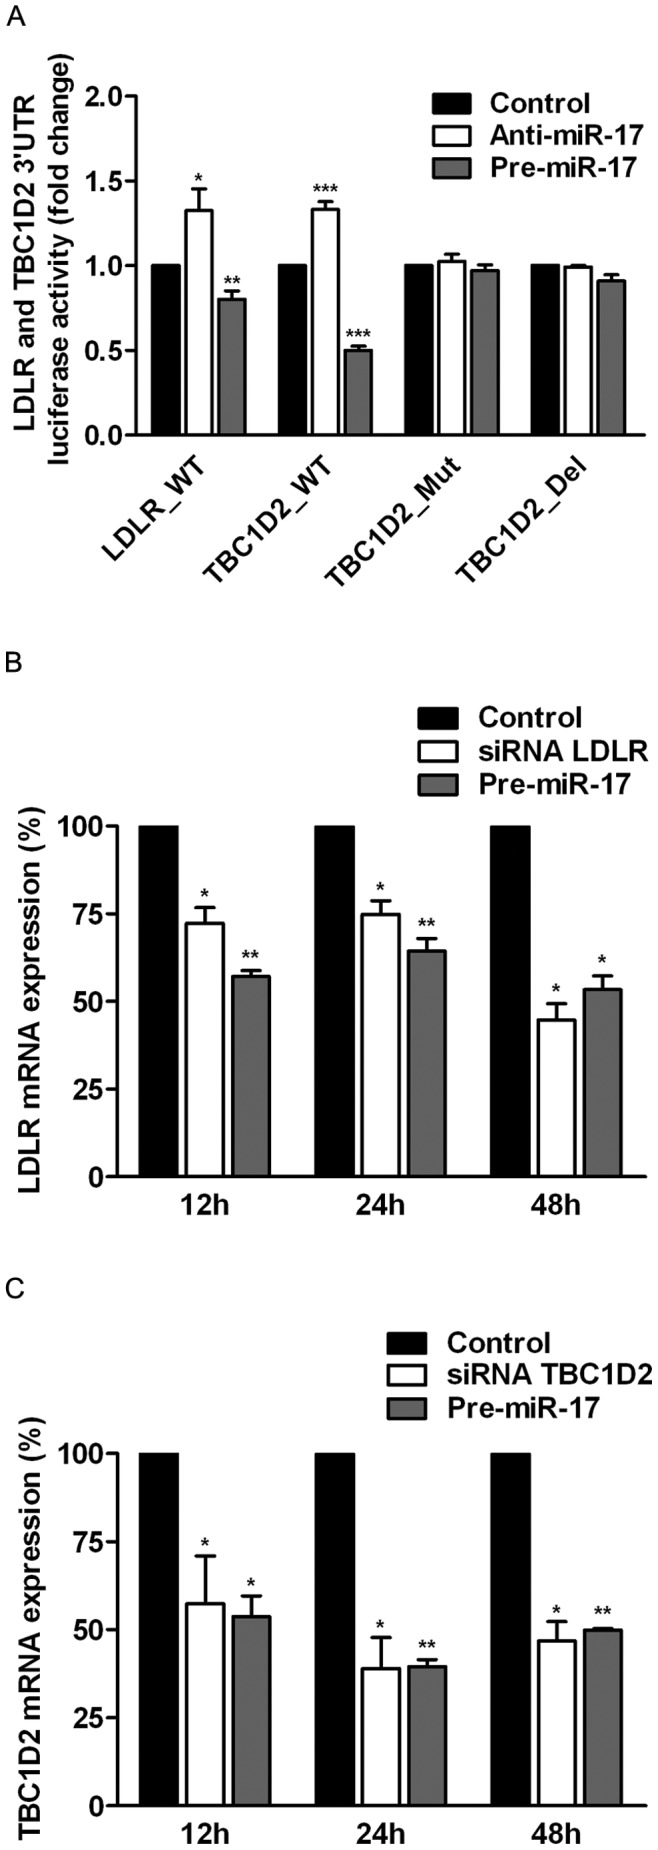 TBC1D2 and LDLR are directly targeted by miR-17. ( A ) miR-17 targets 3′UTRs of TBC1D2 and LDLR as determined by a luciferase reporter assay. HeLa cells were co-transfected with the reporters containing wild-type 3′UTRs of LDLR and TBC1D2 and mutated 3′UTR of TBC1D2, Pre-miR-17 and Anti-miR-17. Luciferase activity was measured 24 h following co-transfection. The activity of luciferase for each experiment was normalized to the activity of the control samples, co-transfected with the respective reporter vector and control Anti-miR or Pre-miR (see Methods ). The bars show mean fold changes of luciferase activity and the error bars show s.e.m. derived from 3 independent experiments. Over-expression of miR-17 decreased the expression level of LDLR ( B ) and TBC1D2 ( C ) mRNAs as determined by qRT-PCR. The relative expression levels of TBC1D2 and LDLR after treatment with siRNAs and Pre-miR-17 were normalized to the expression level when control siRNAs and control Pre-miR were transfected (see Methods ). Bars show mean of the relative mRNA expression levels and error bars show s.e.m. derived from 2 independent experiments. *, p≤0,05; **, p≤0,01; ***, p≤0,001.